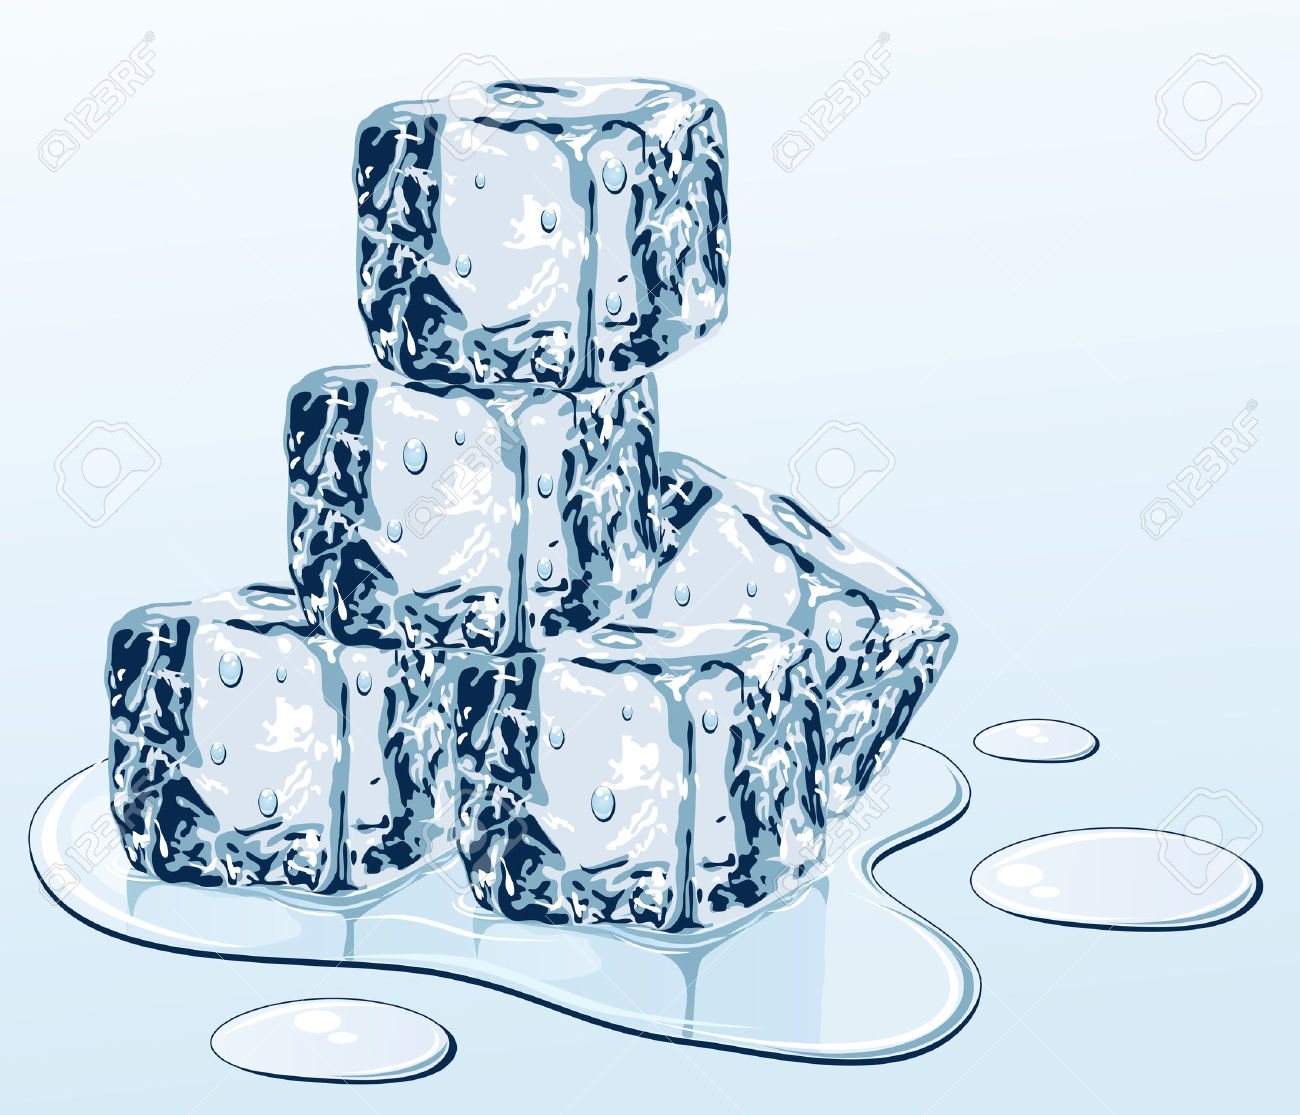 Ice Cube On Water Surface, Illustration Royalty Free Cliparts.